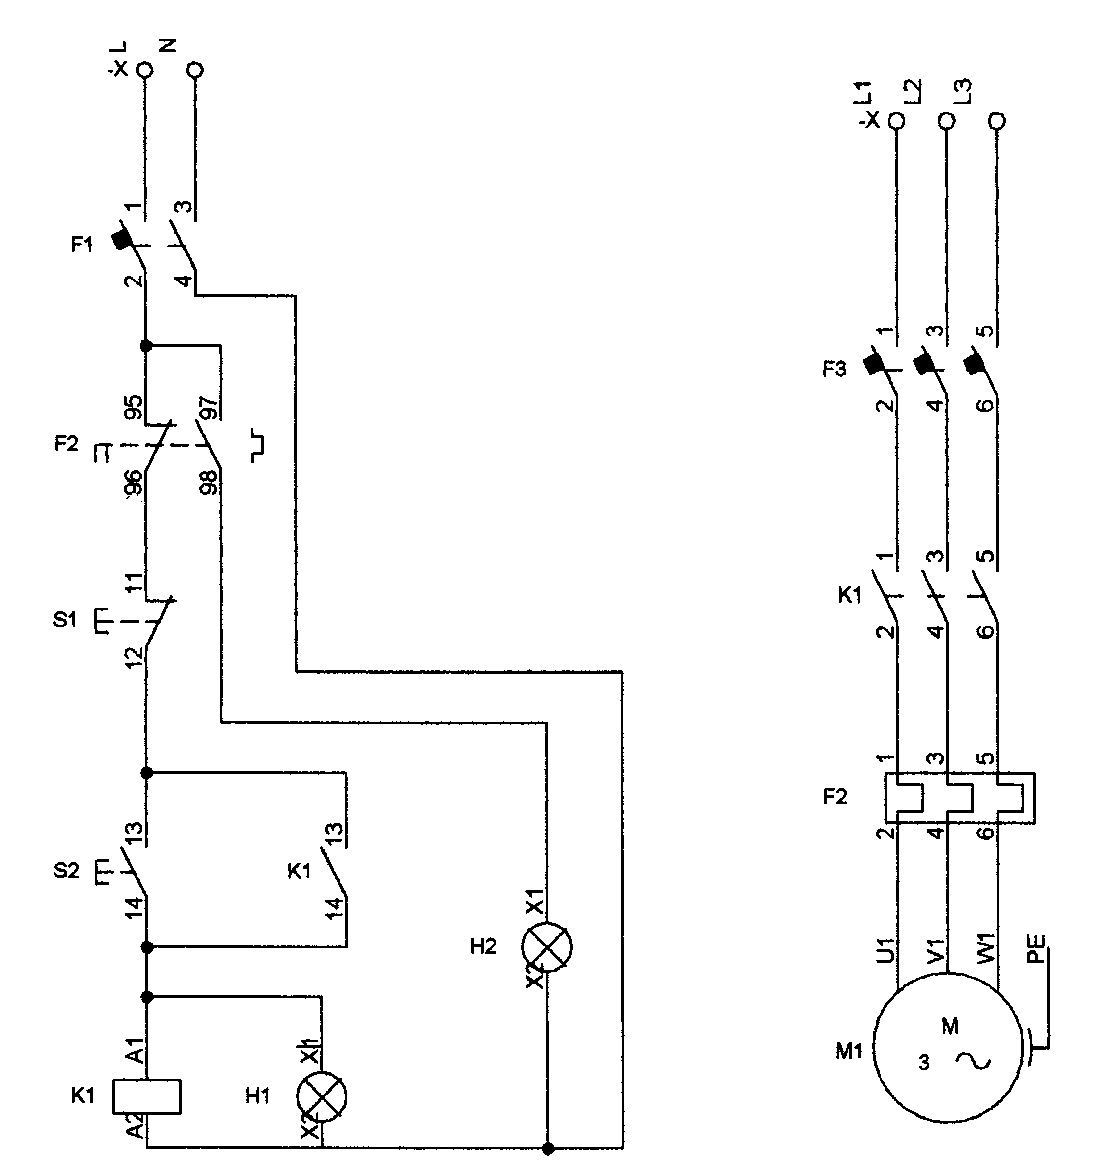 medium resolution of  f2 diagrama del motor auto electrical wiring diagram on suzuki wiring diagram modem wiring wiring diagram kulkas 2 pintu mitsubishi